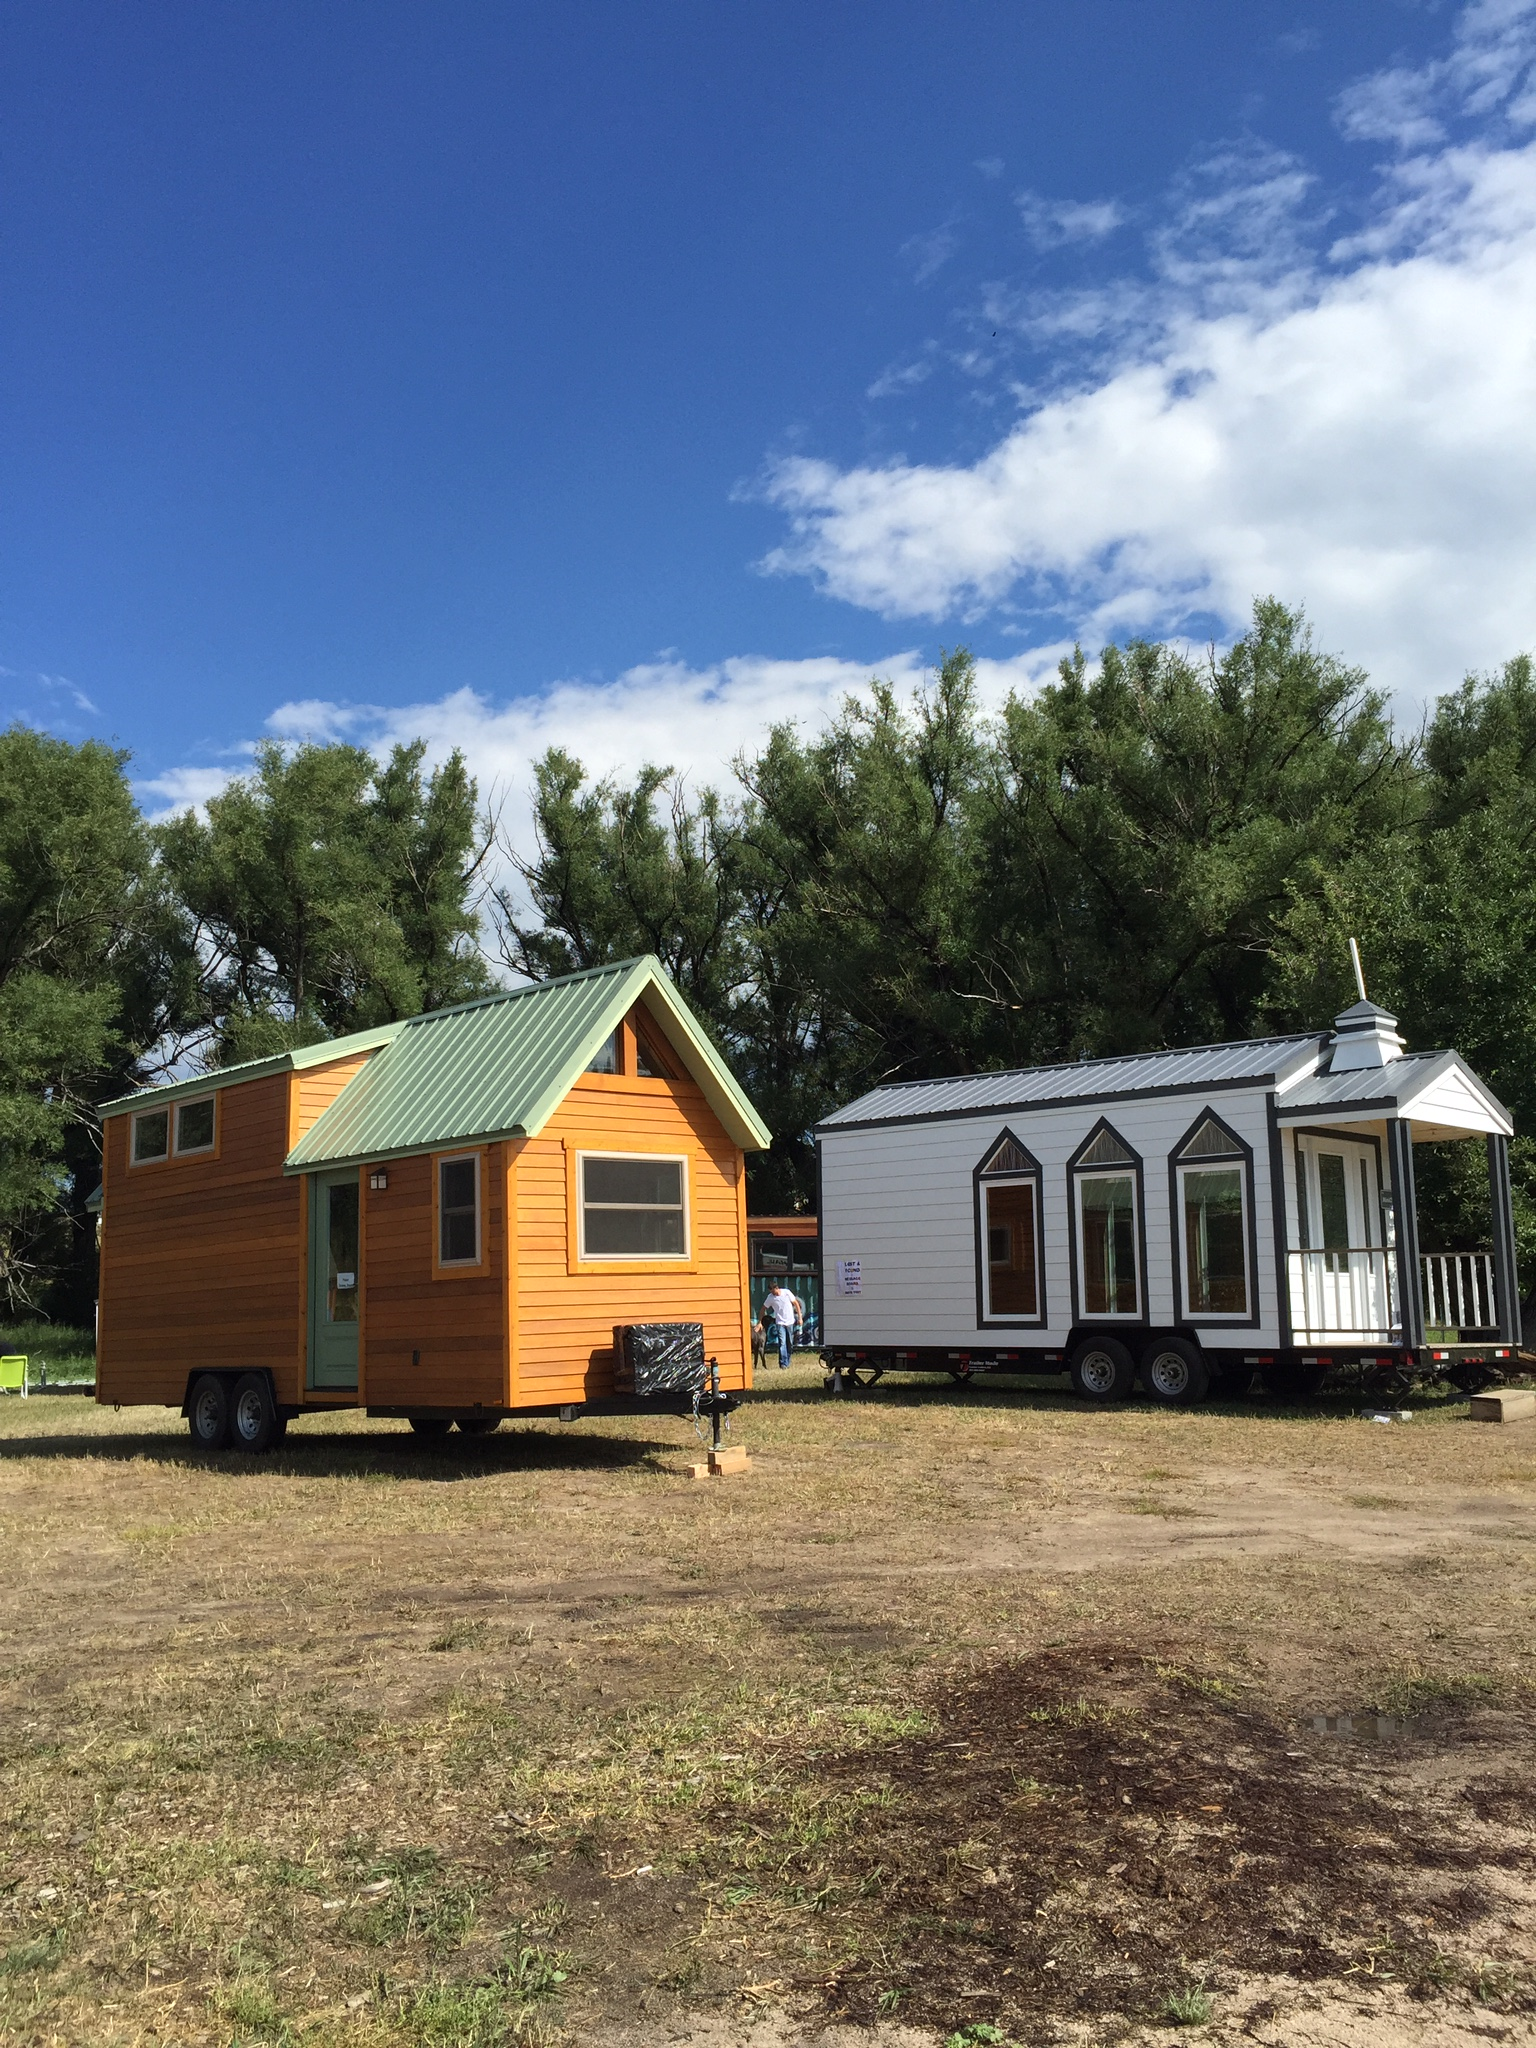 Simblissity Tiny Homes & the EcoCabins Mni Chapel